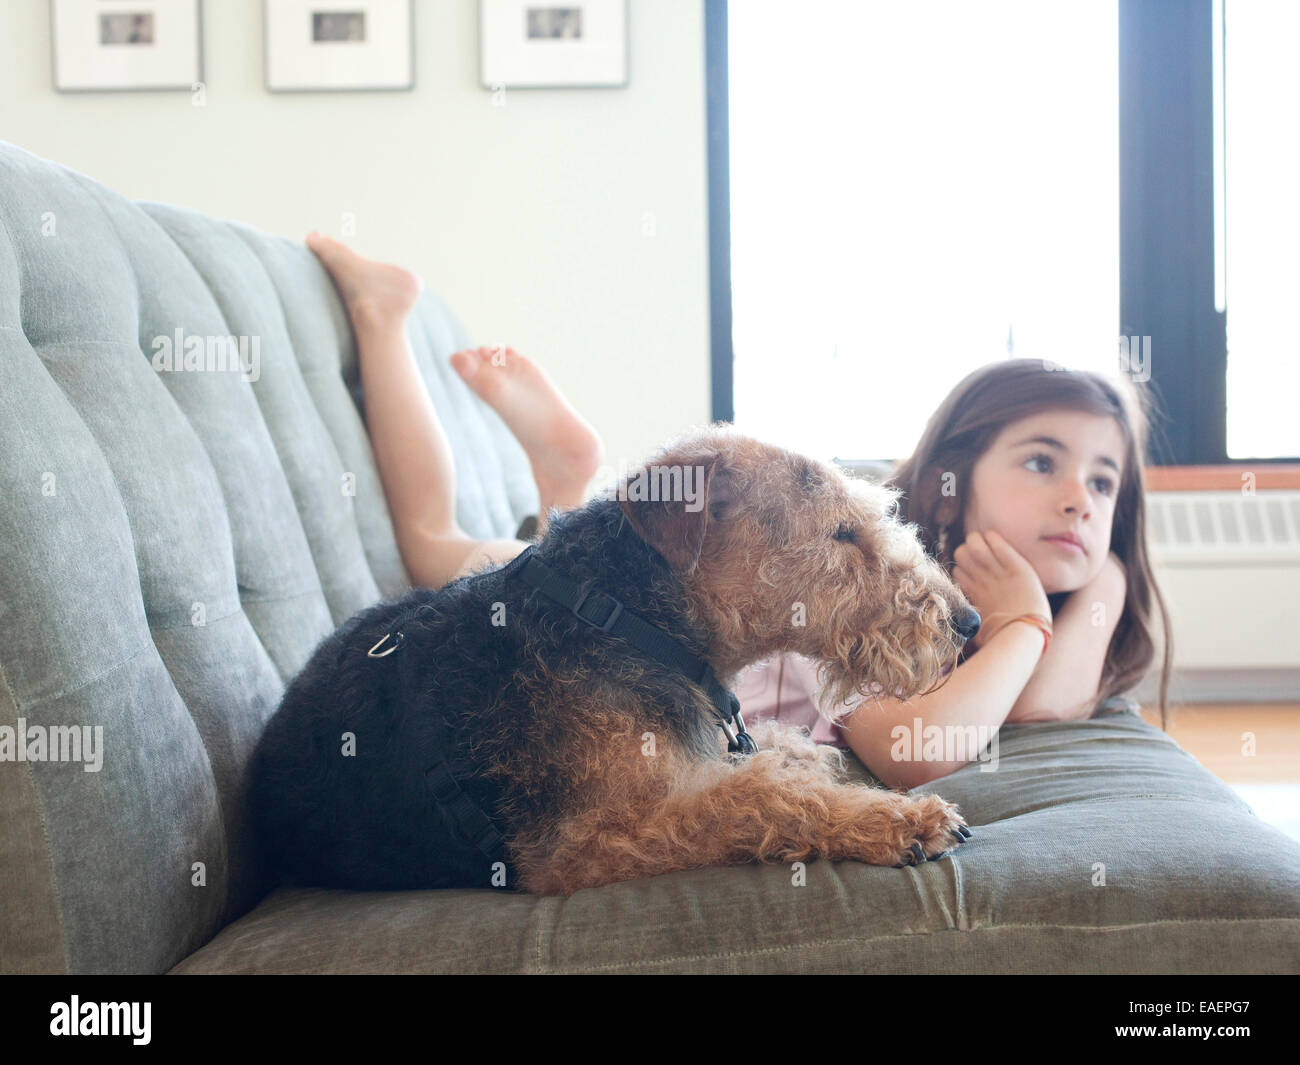 Young girl and dog on couch at home. - Stock Image